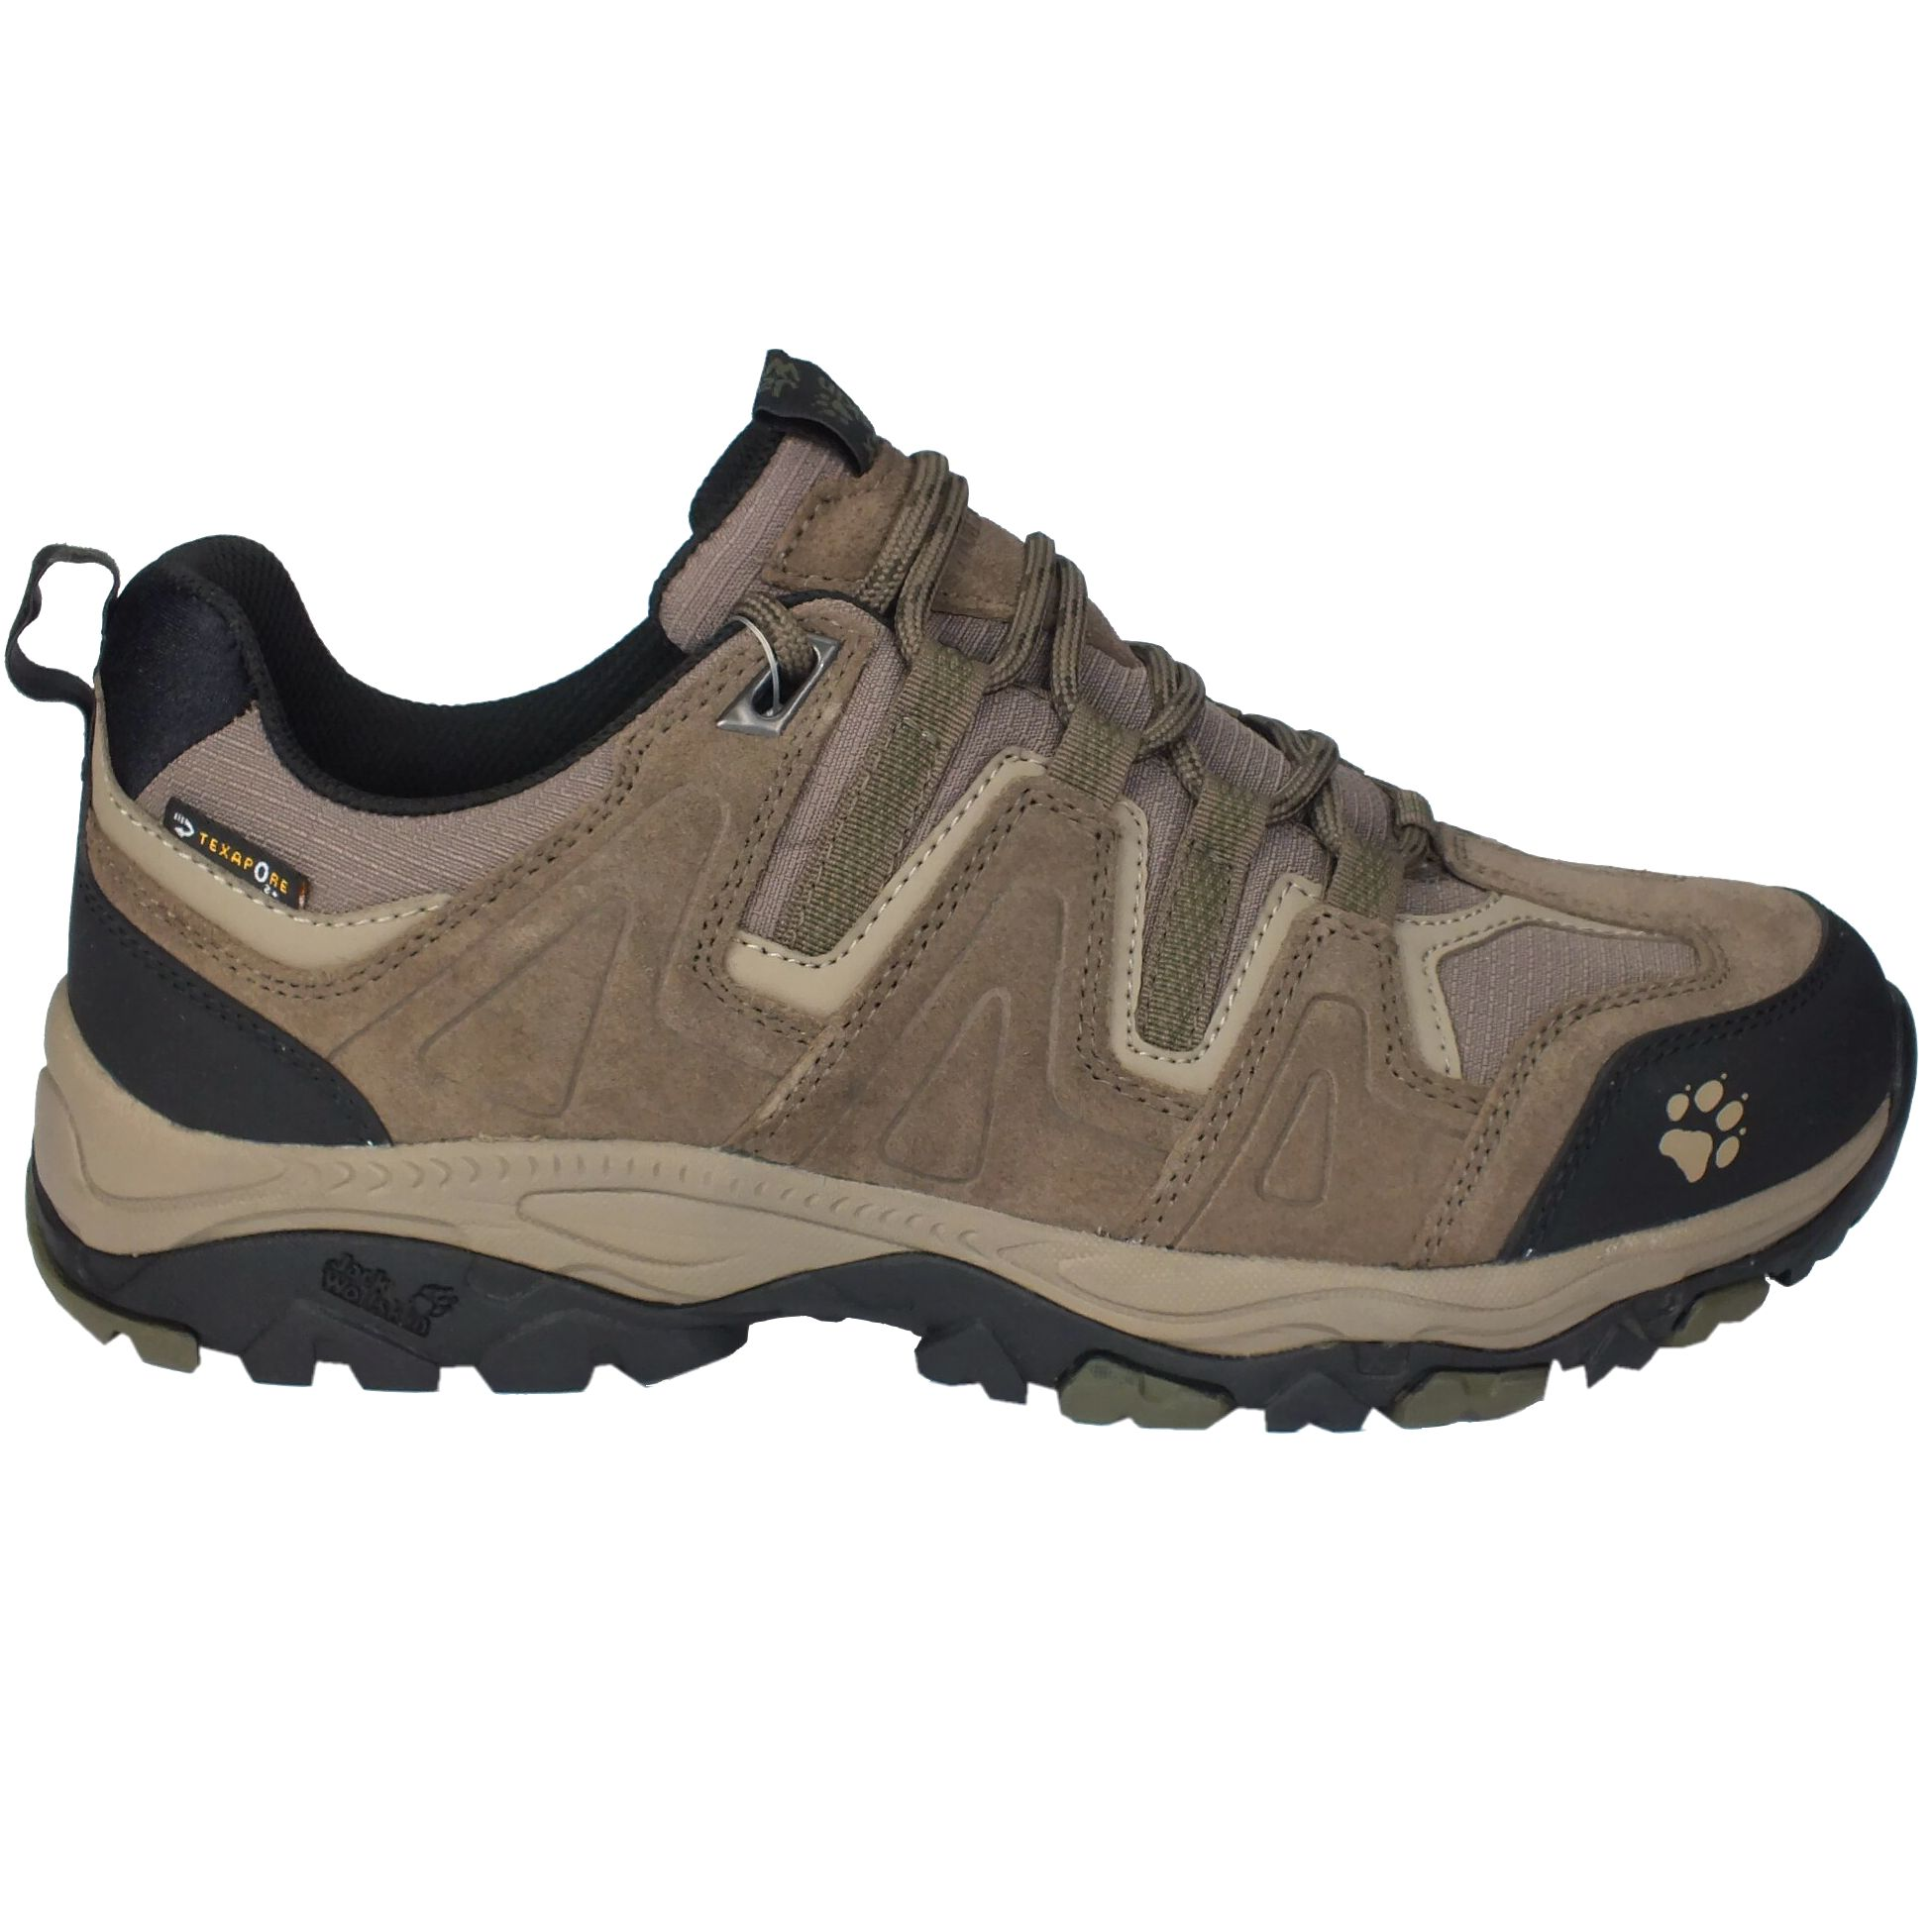 jack wolfskin mountain attack texapore schuhe wanderschuhe trekkingschuhe herren ebay. Black Bedroom Furniture Sets. Home Design Ideas